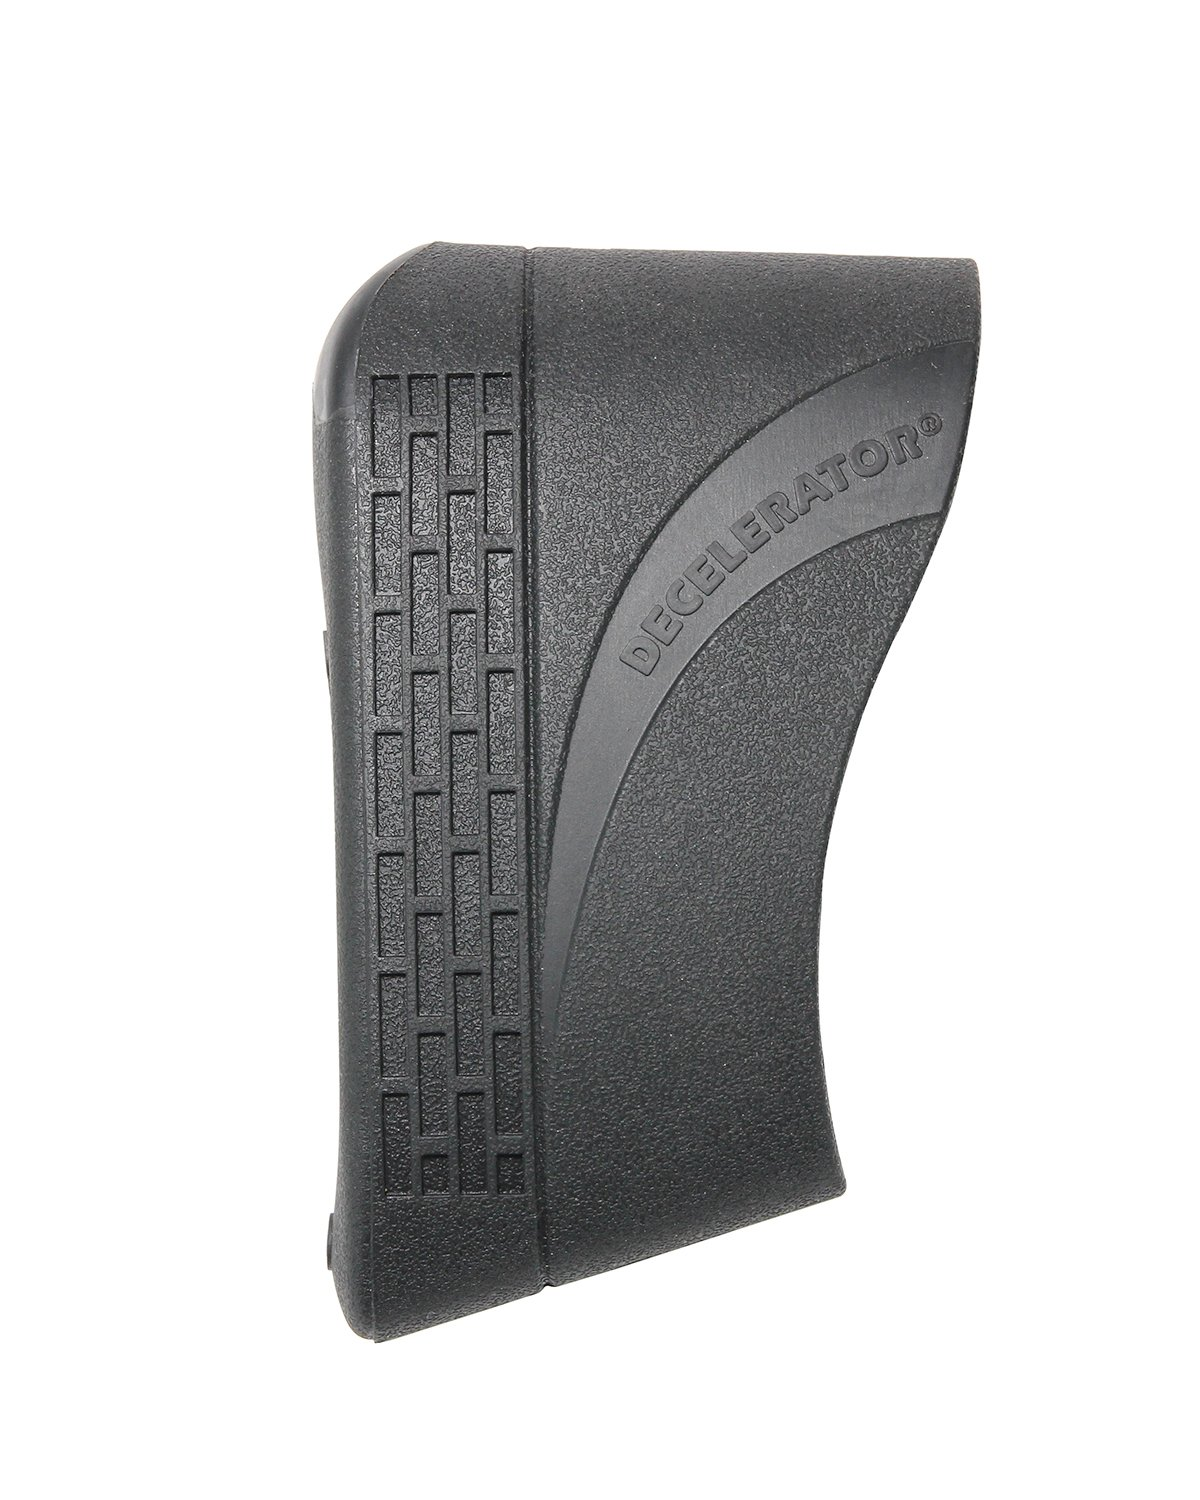 Pachmayr 04412 Decelerator Recoil Pads, Slip-On Recoil Pad, (Large, Black) by Pachmayr